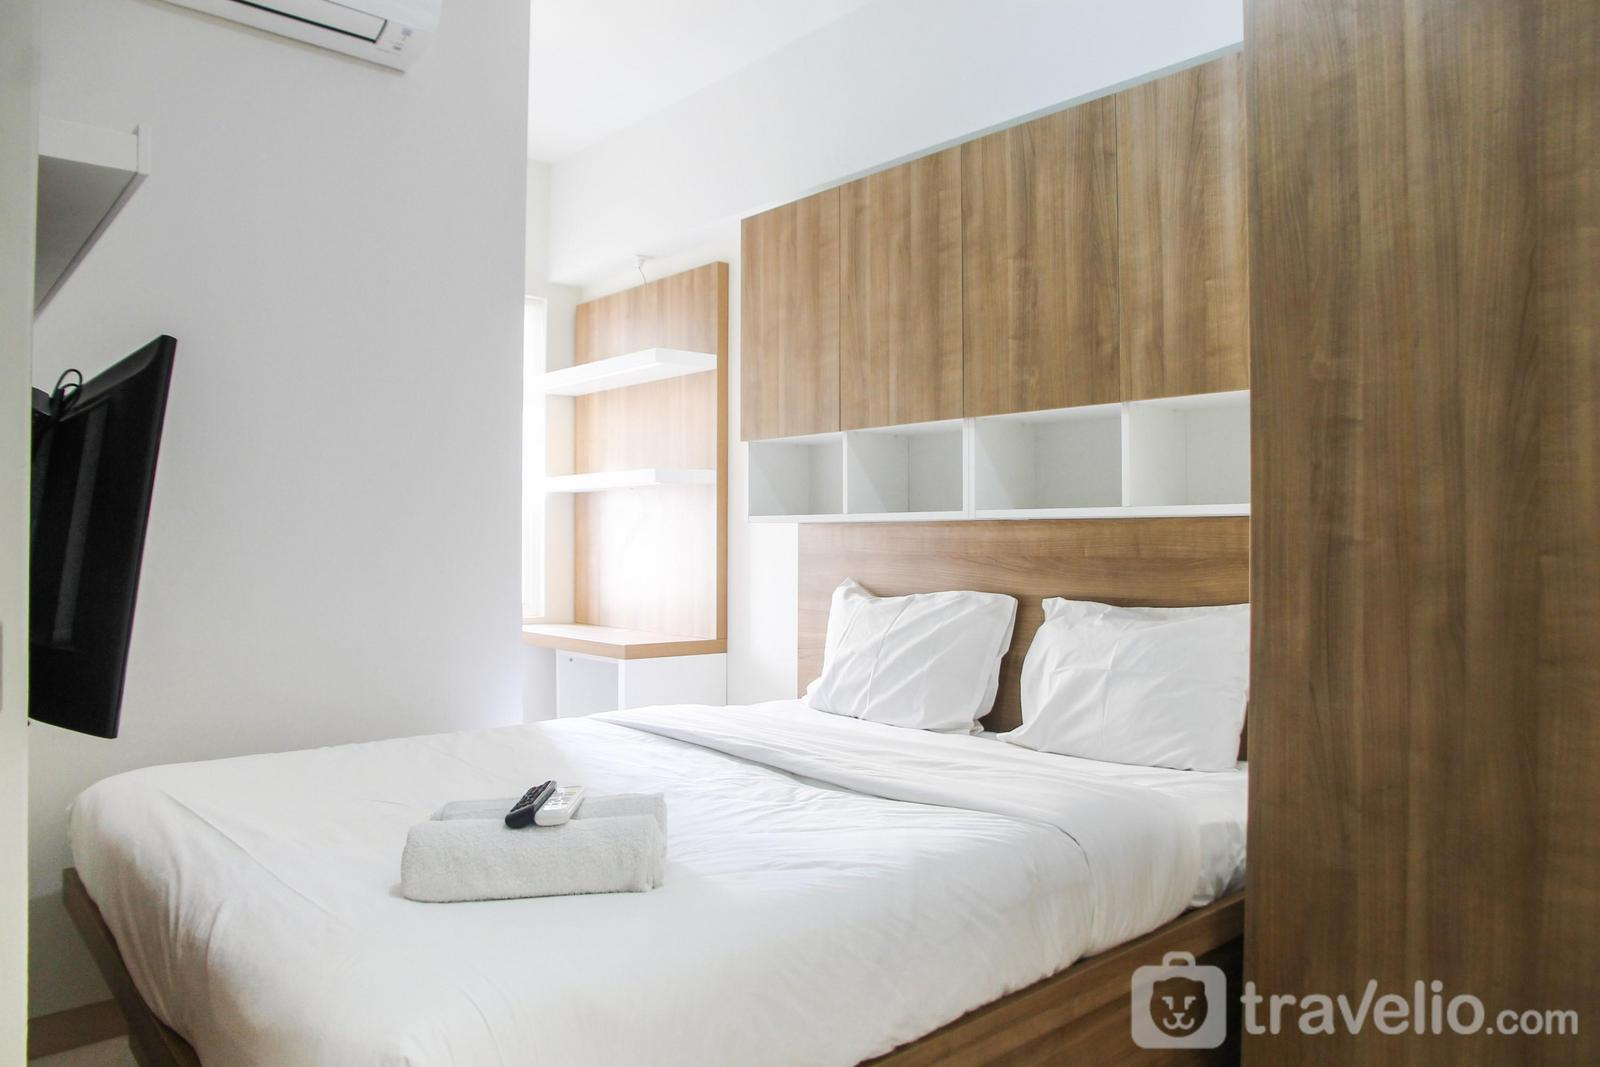 Apartemen Springlake Summarecon Bekasi - 2BR with Sofa Bed at Springlake Summarecon Apartment By Travelio